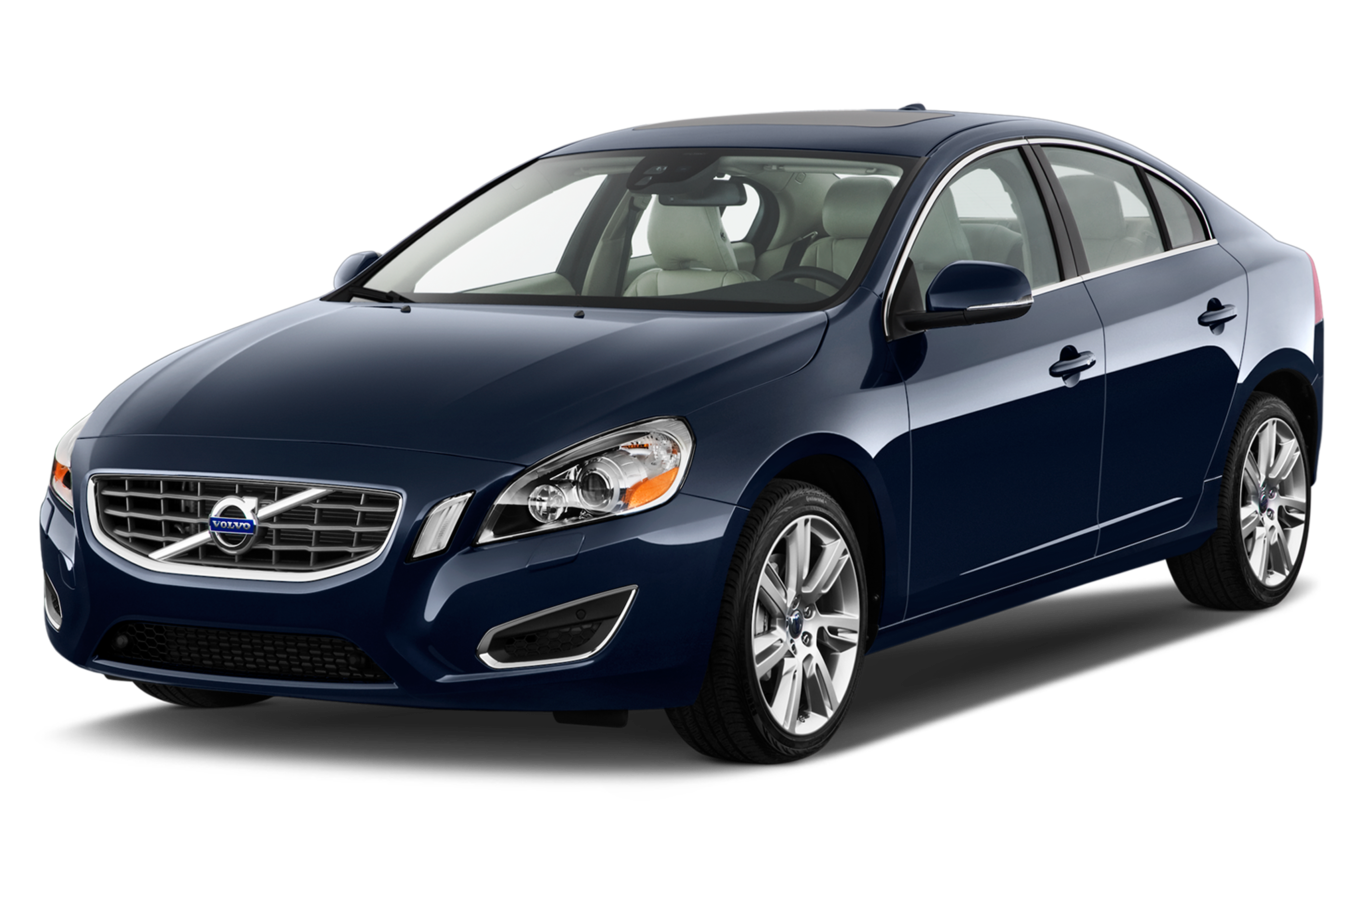 Volvo S60 Reviews 5 Cylinder Engine Problems